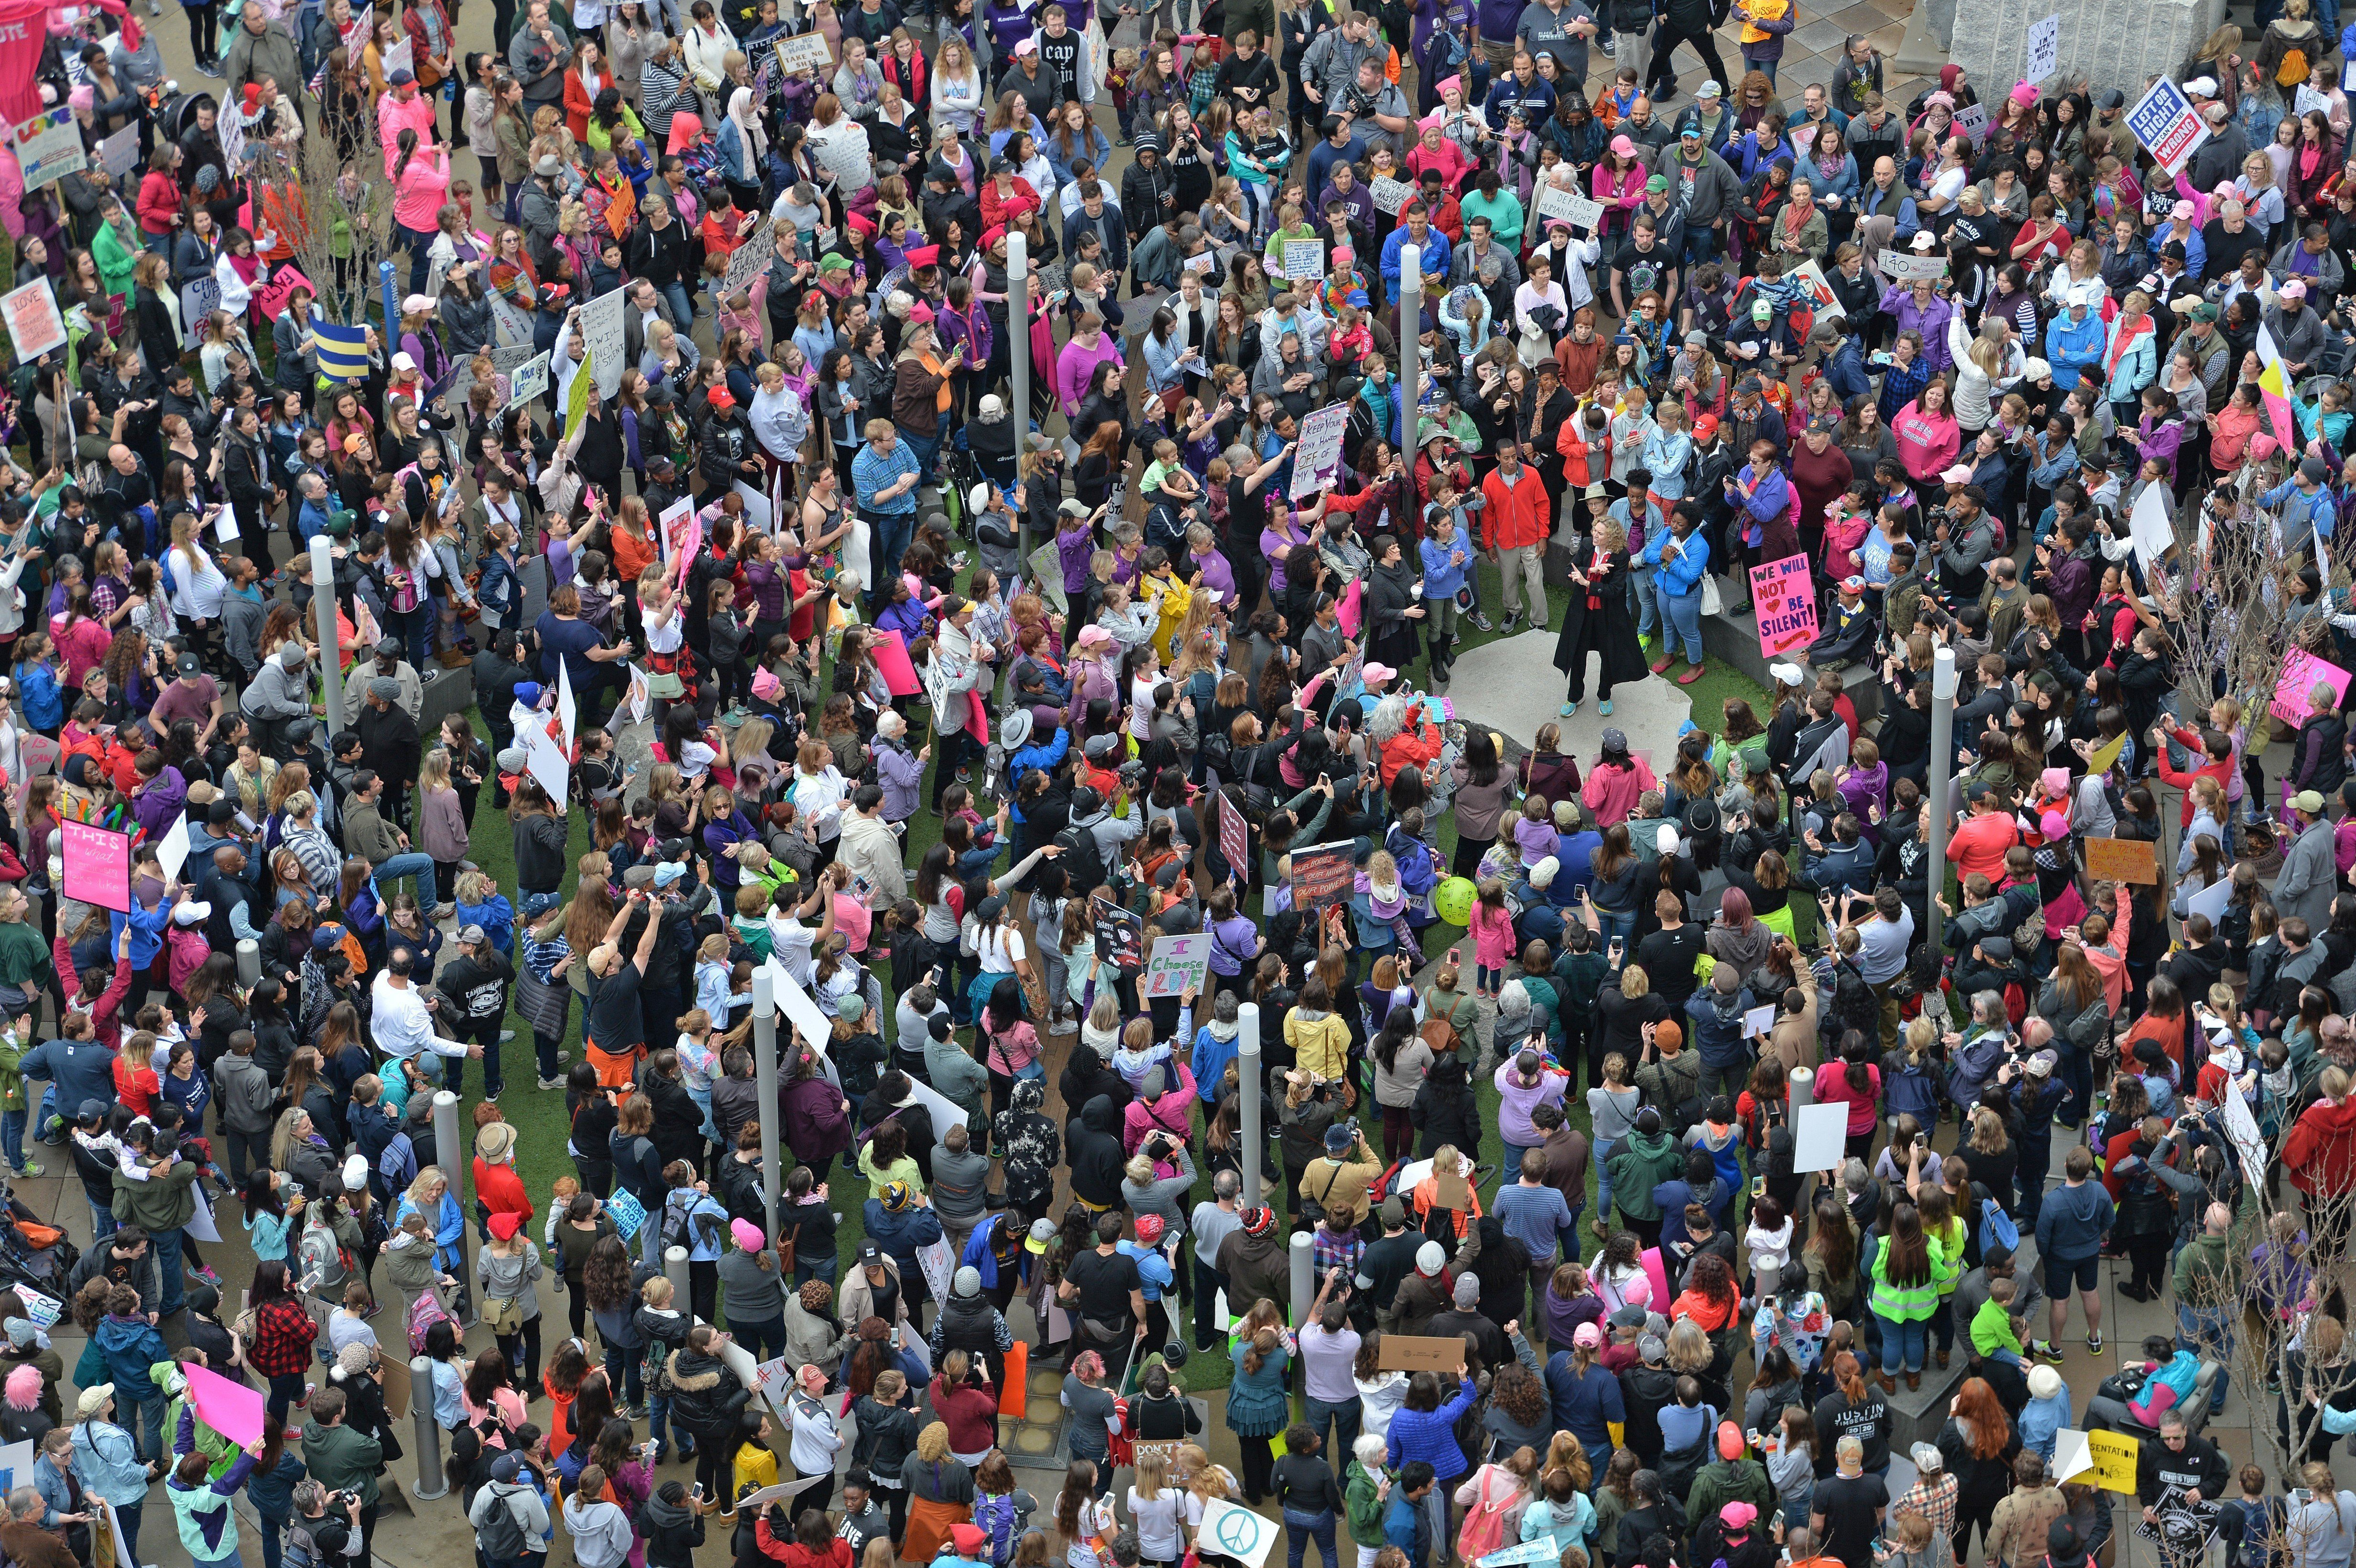 CHARLOTTE, UNITED STATES - JANUARY 21: Women's march in Charlotte attended by an estimated 10,000 demonstrators as a sister march to the one in Washington DC while Charlotte mayor Jennifer Roberts speaks, in USA on January 21, 2017. (Photo by Peter Zay/Anadolu Agency/Getty Images)